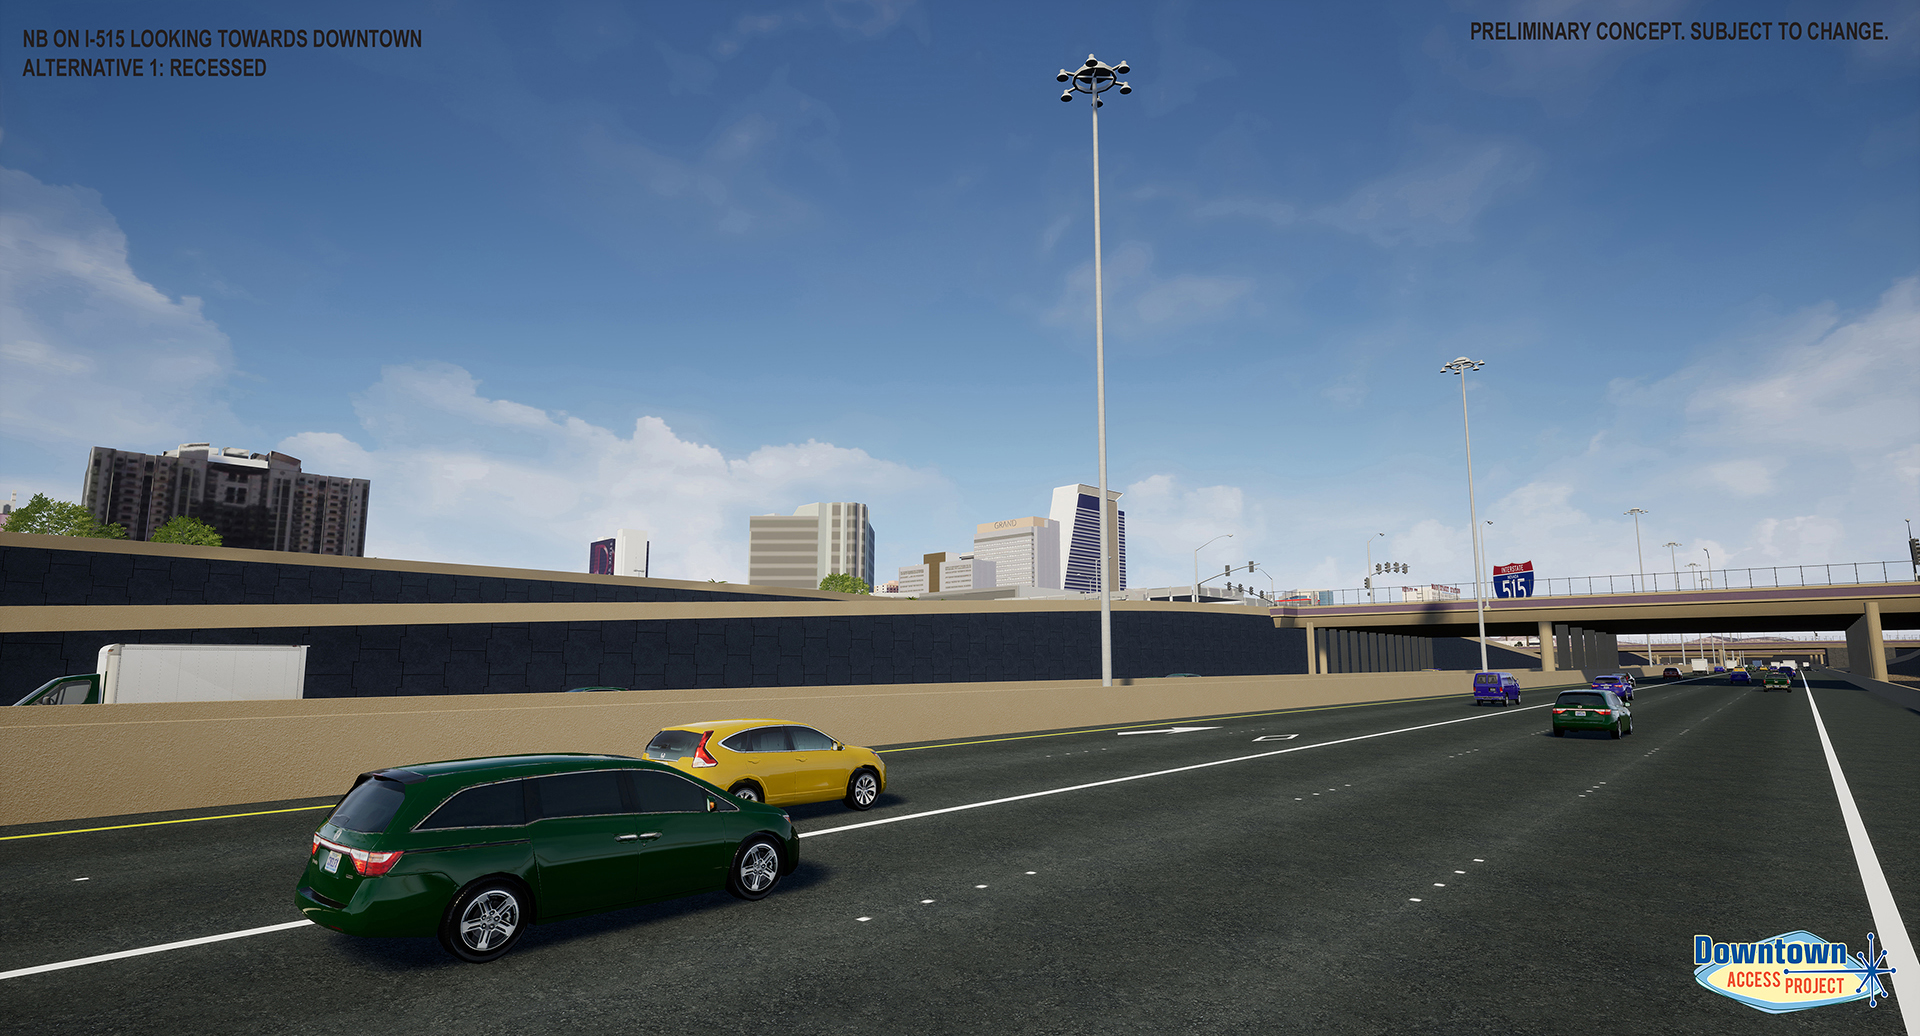 Driver View of Downtown from Proposed Design Alternatives